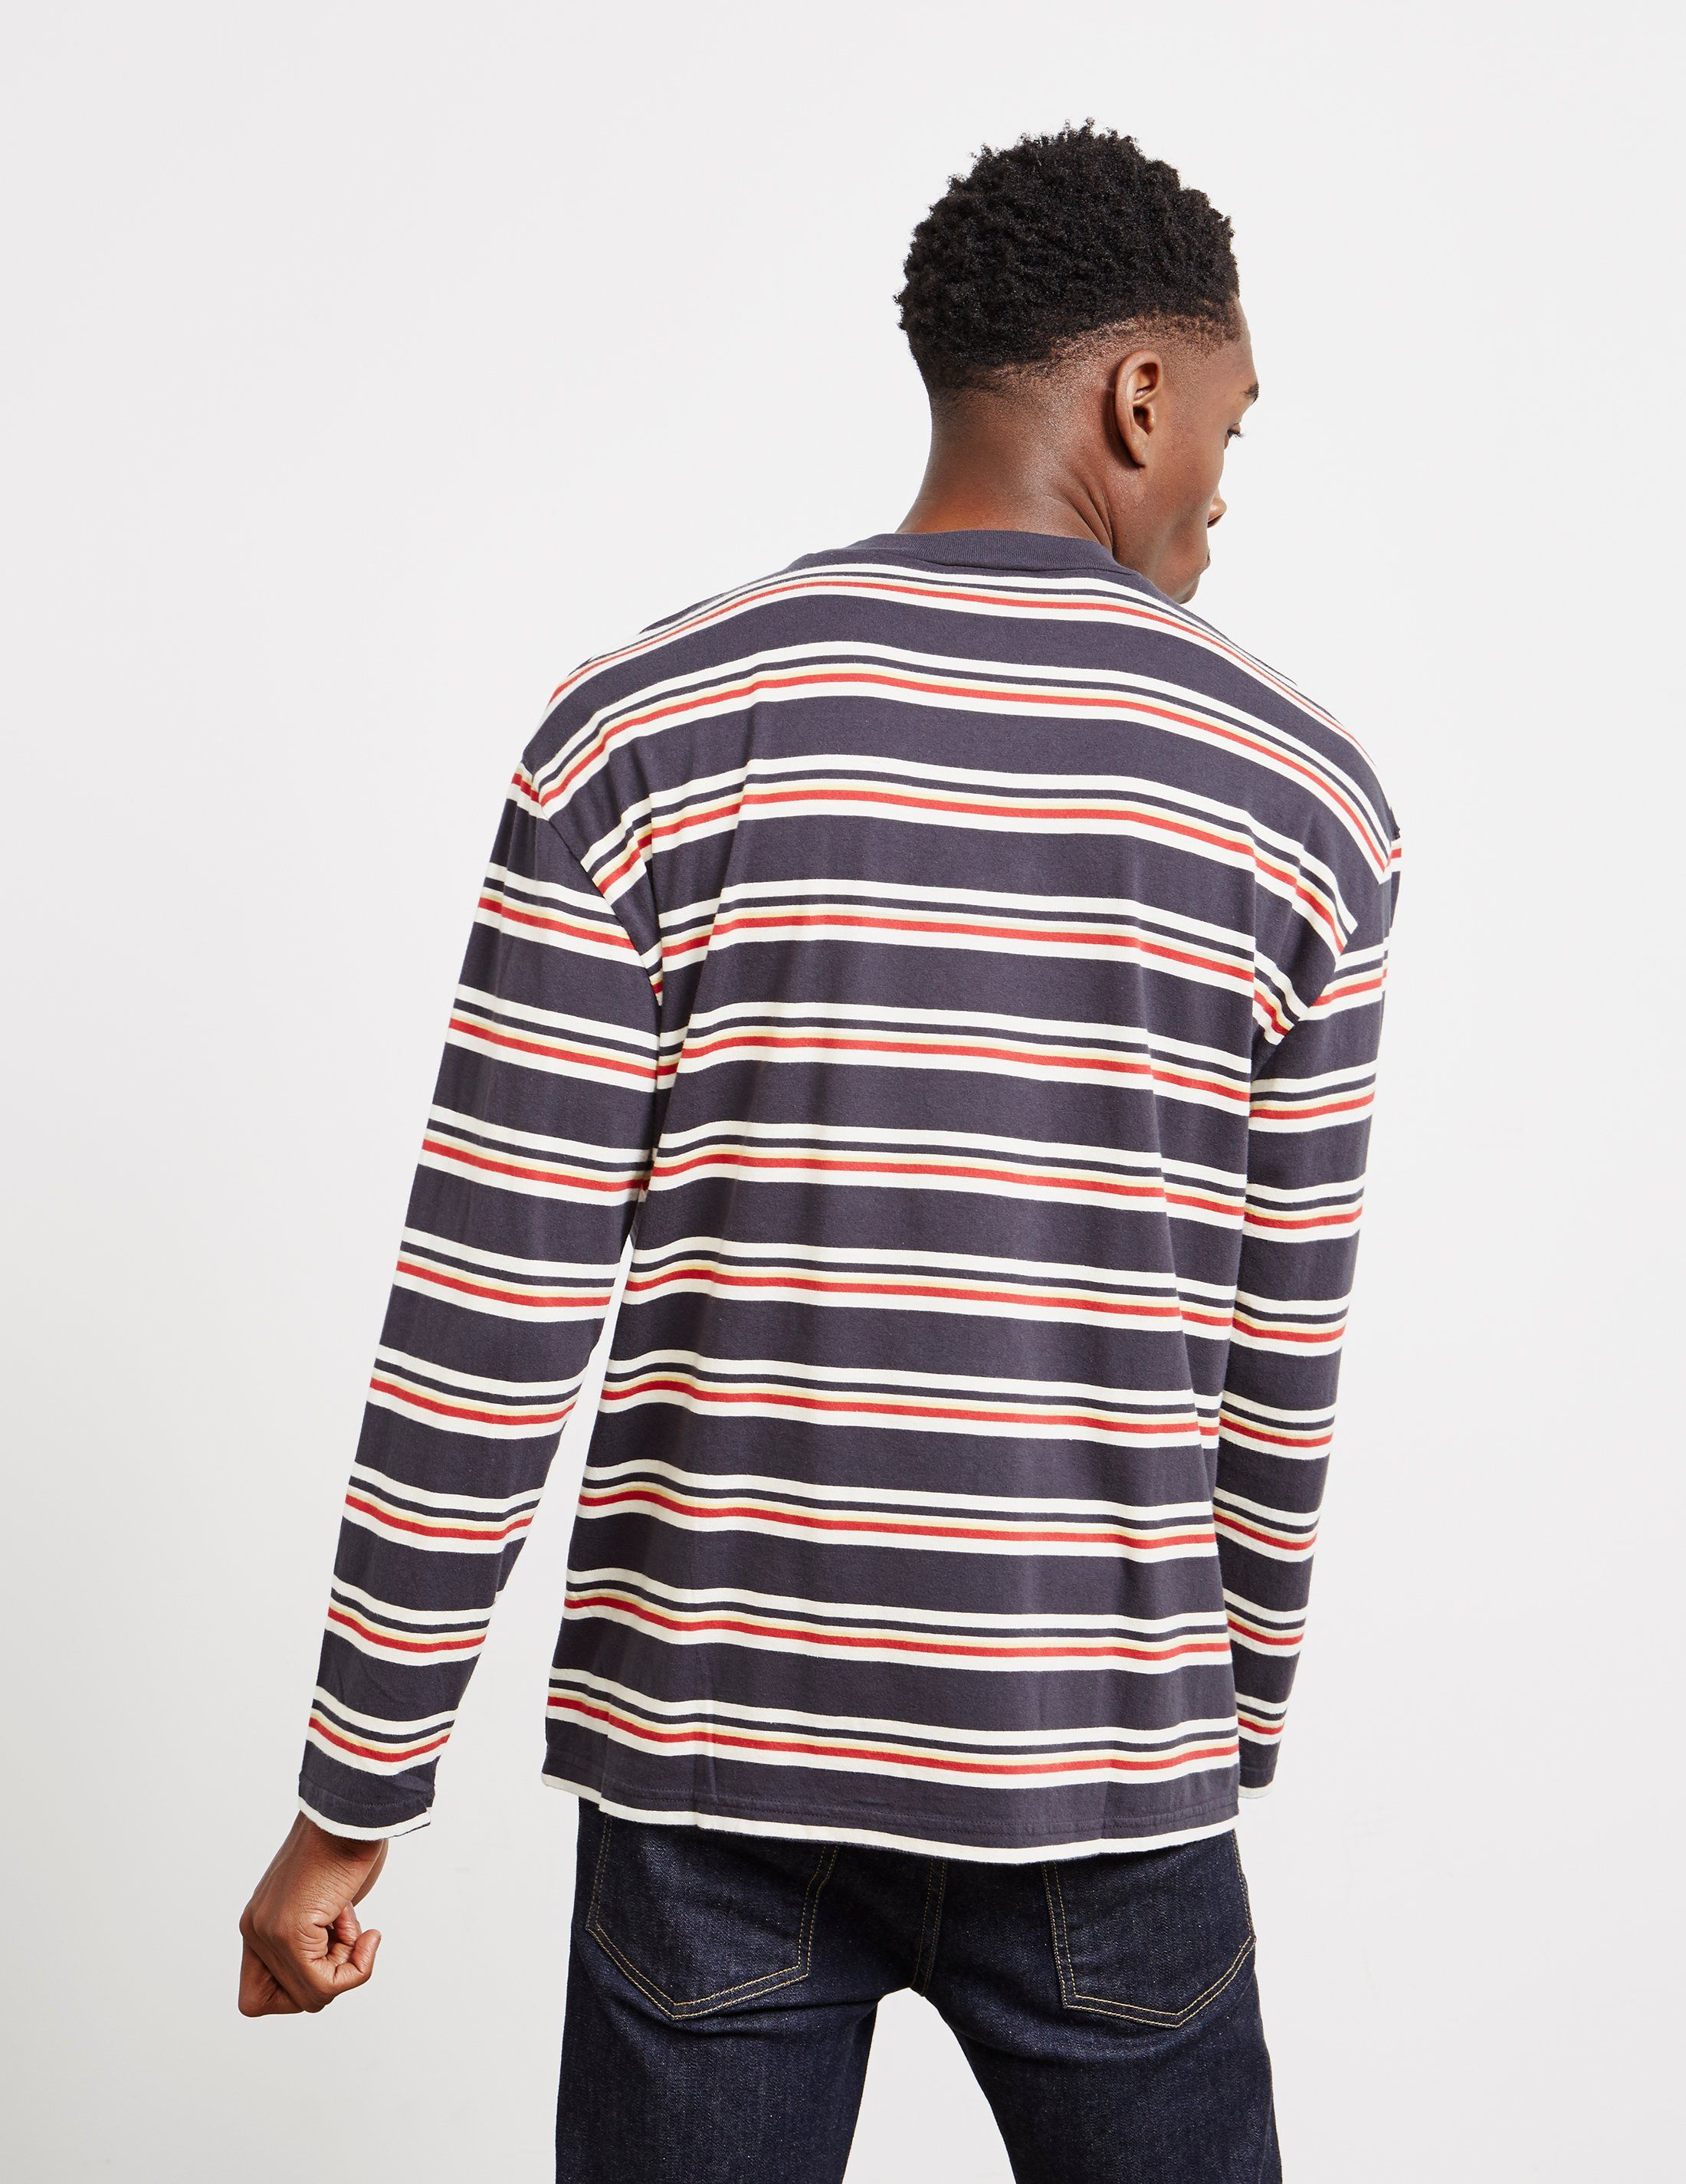 Maison Kitsune Striped Long Sleeve T-Shirt